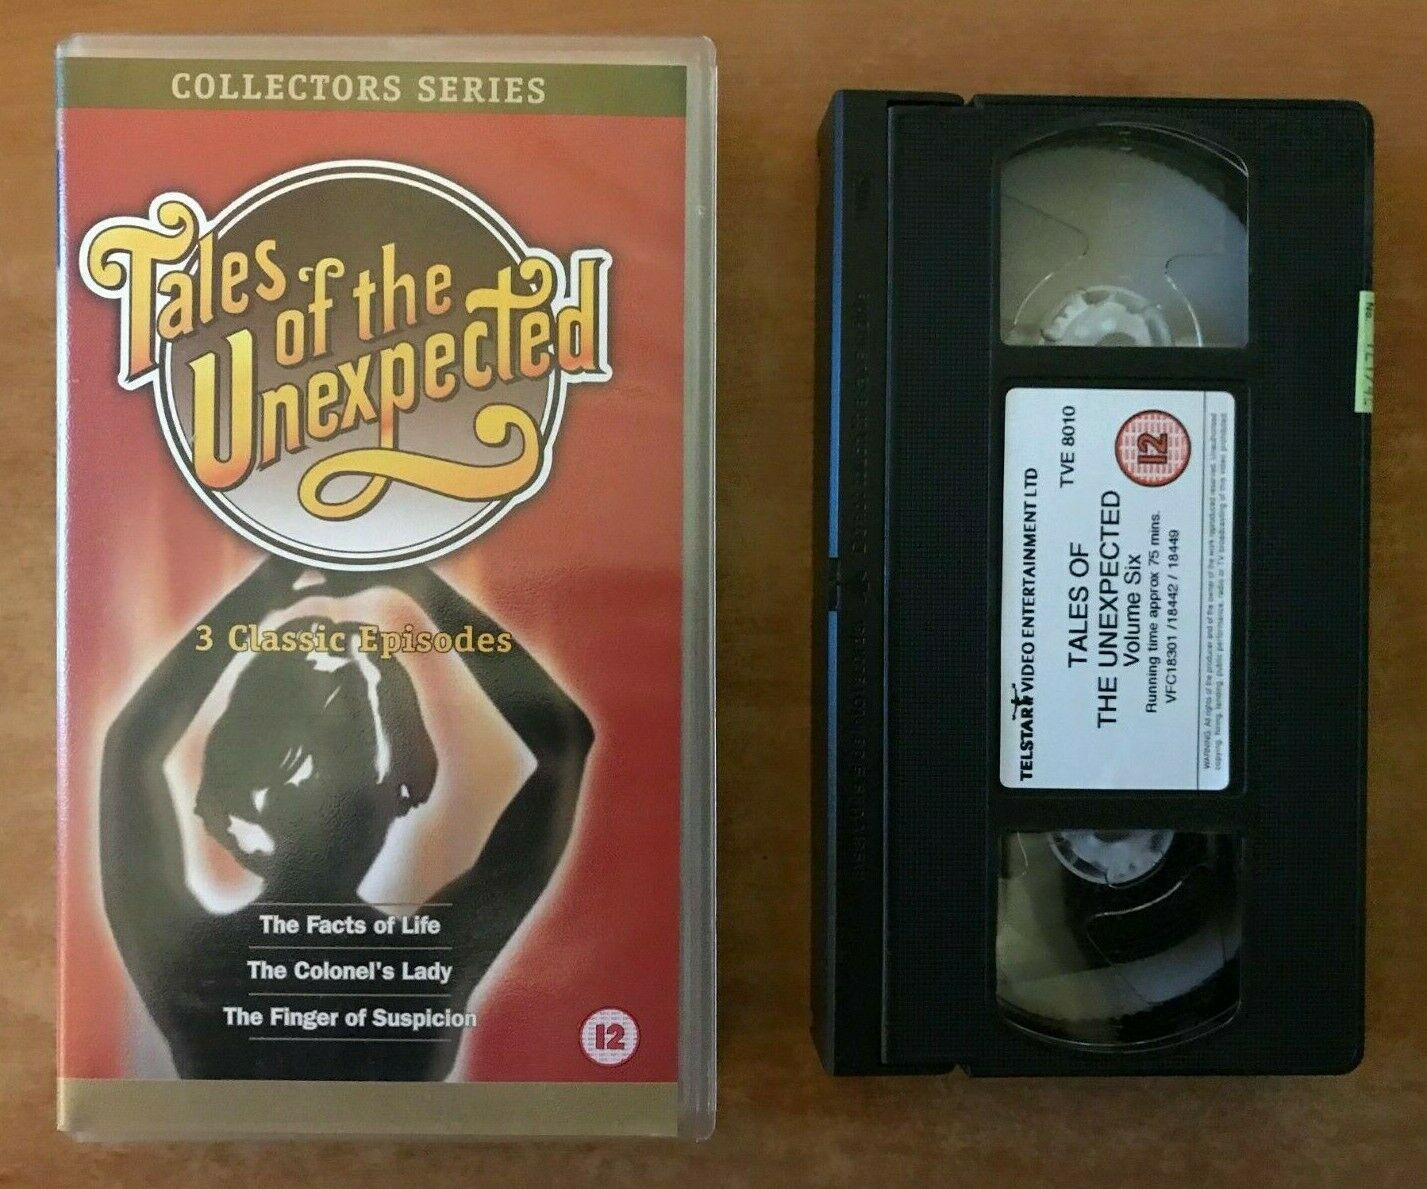 Tales Of The Unexpected (Vol. 6): The Facts Of Life - Jim Broadbent - Pal VHS